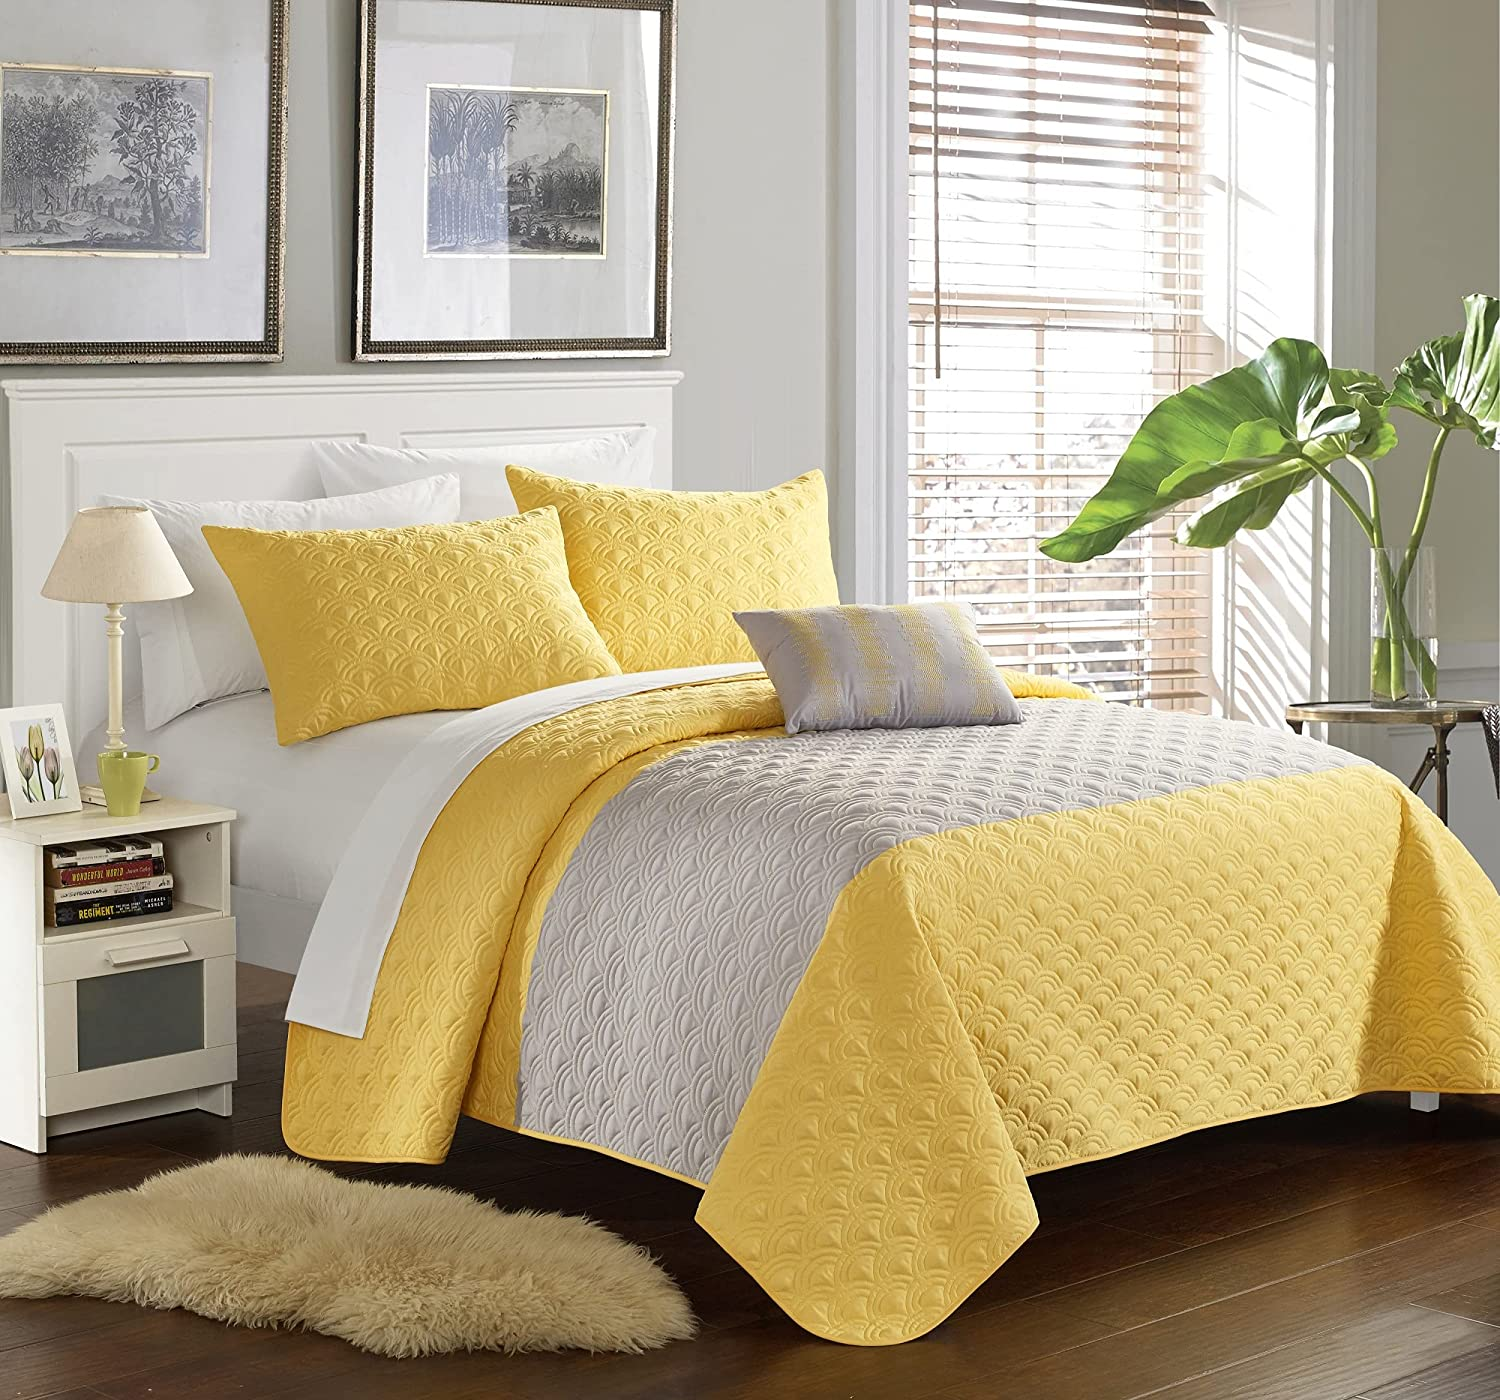 Chic Bombing new work Home QS1987-AN Max 88% OFF 4 Piece Geometric Dominic Embroidered Quilt